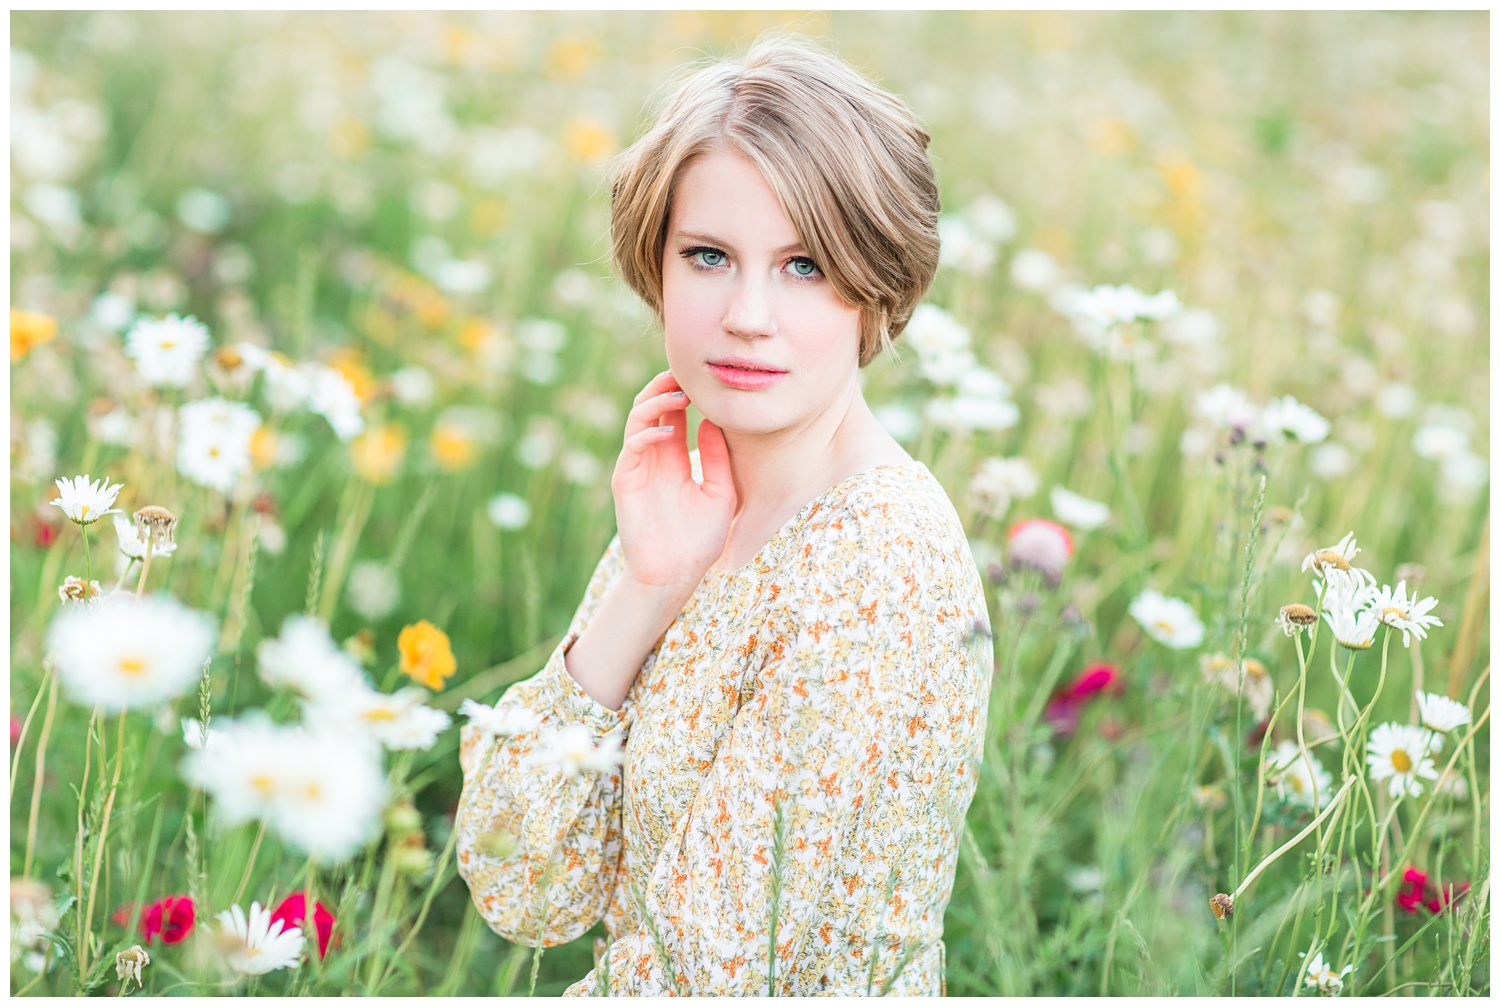 Vintage, film inspired, 70s retro styled senior photoshoot at golden hour in a floral field. | CB Studio